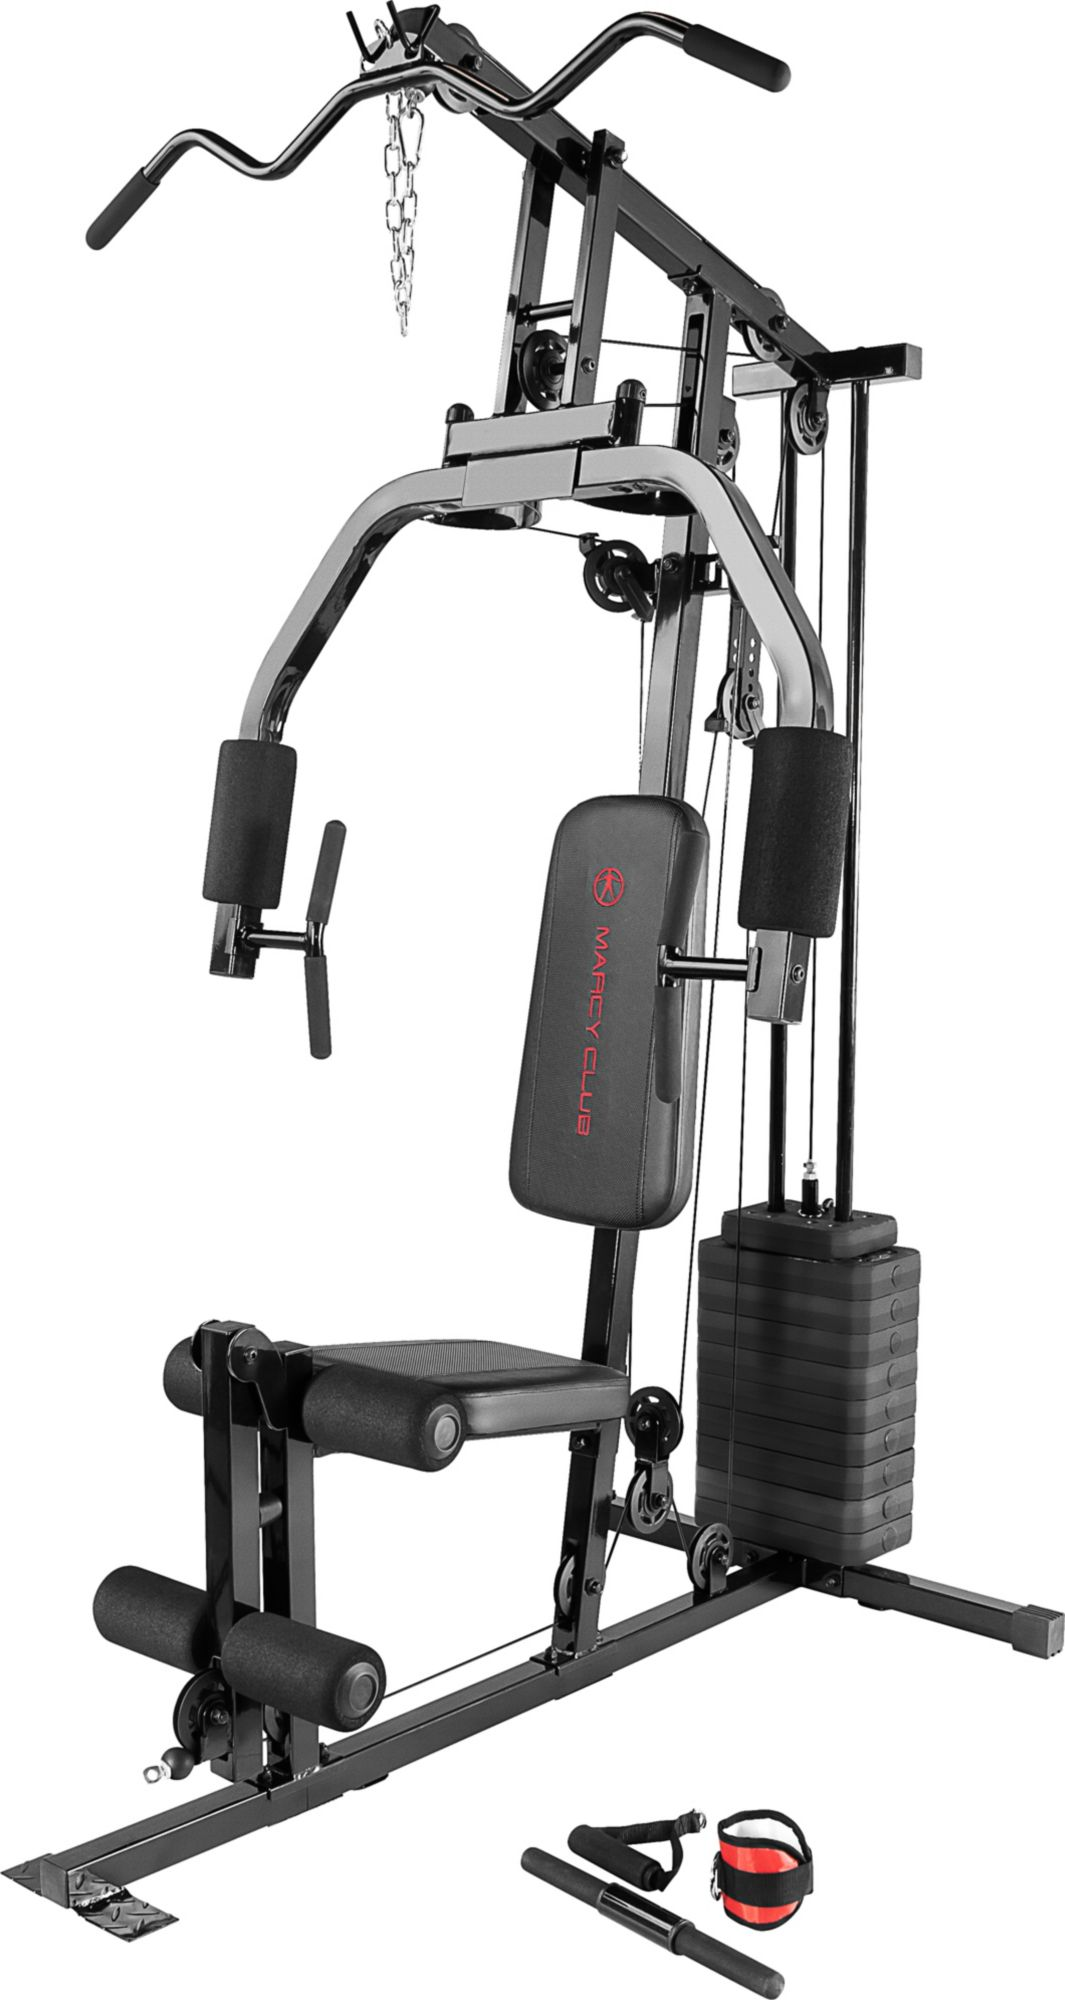 Marcy lb single stack home gym dick s sporting goods